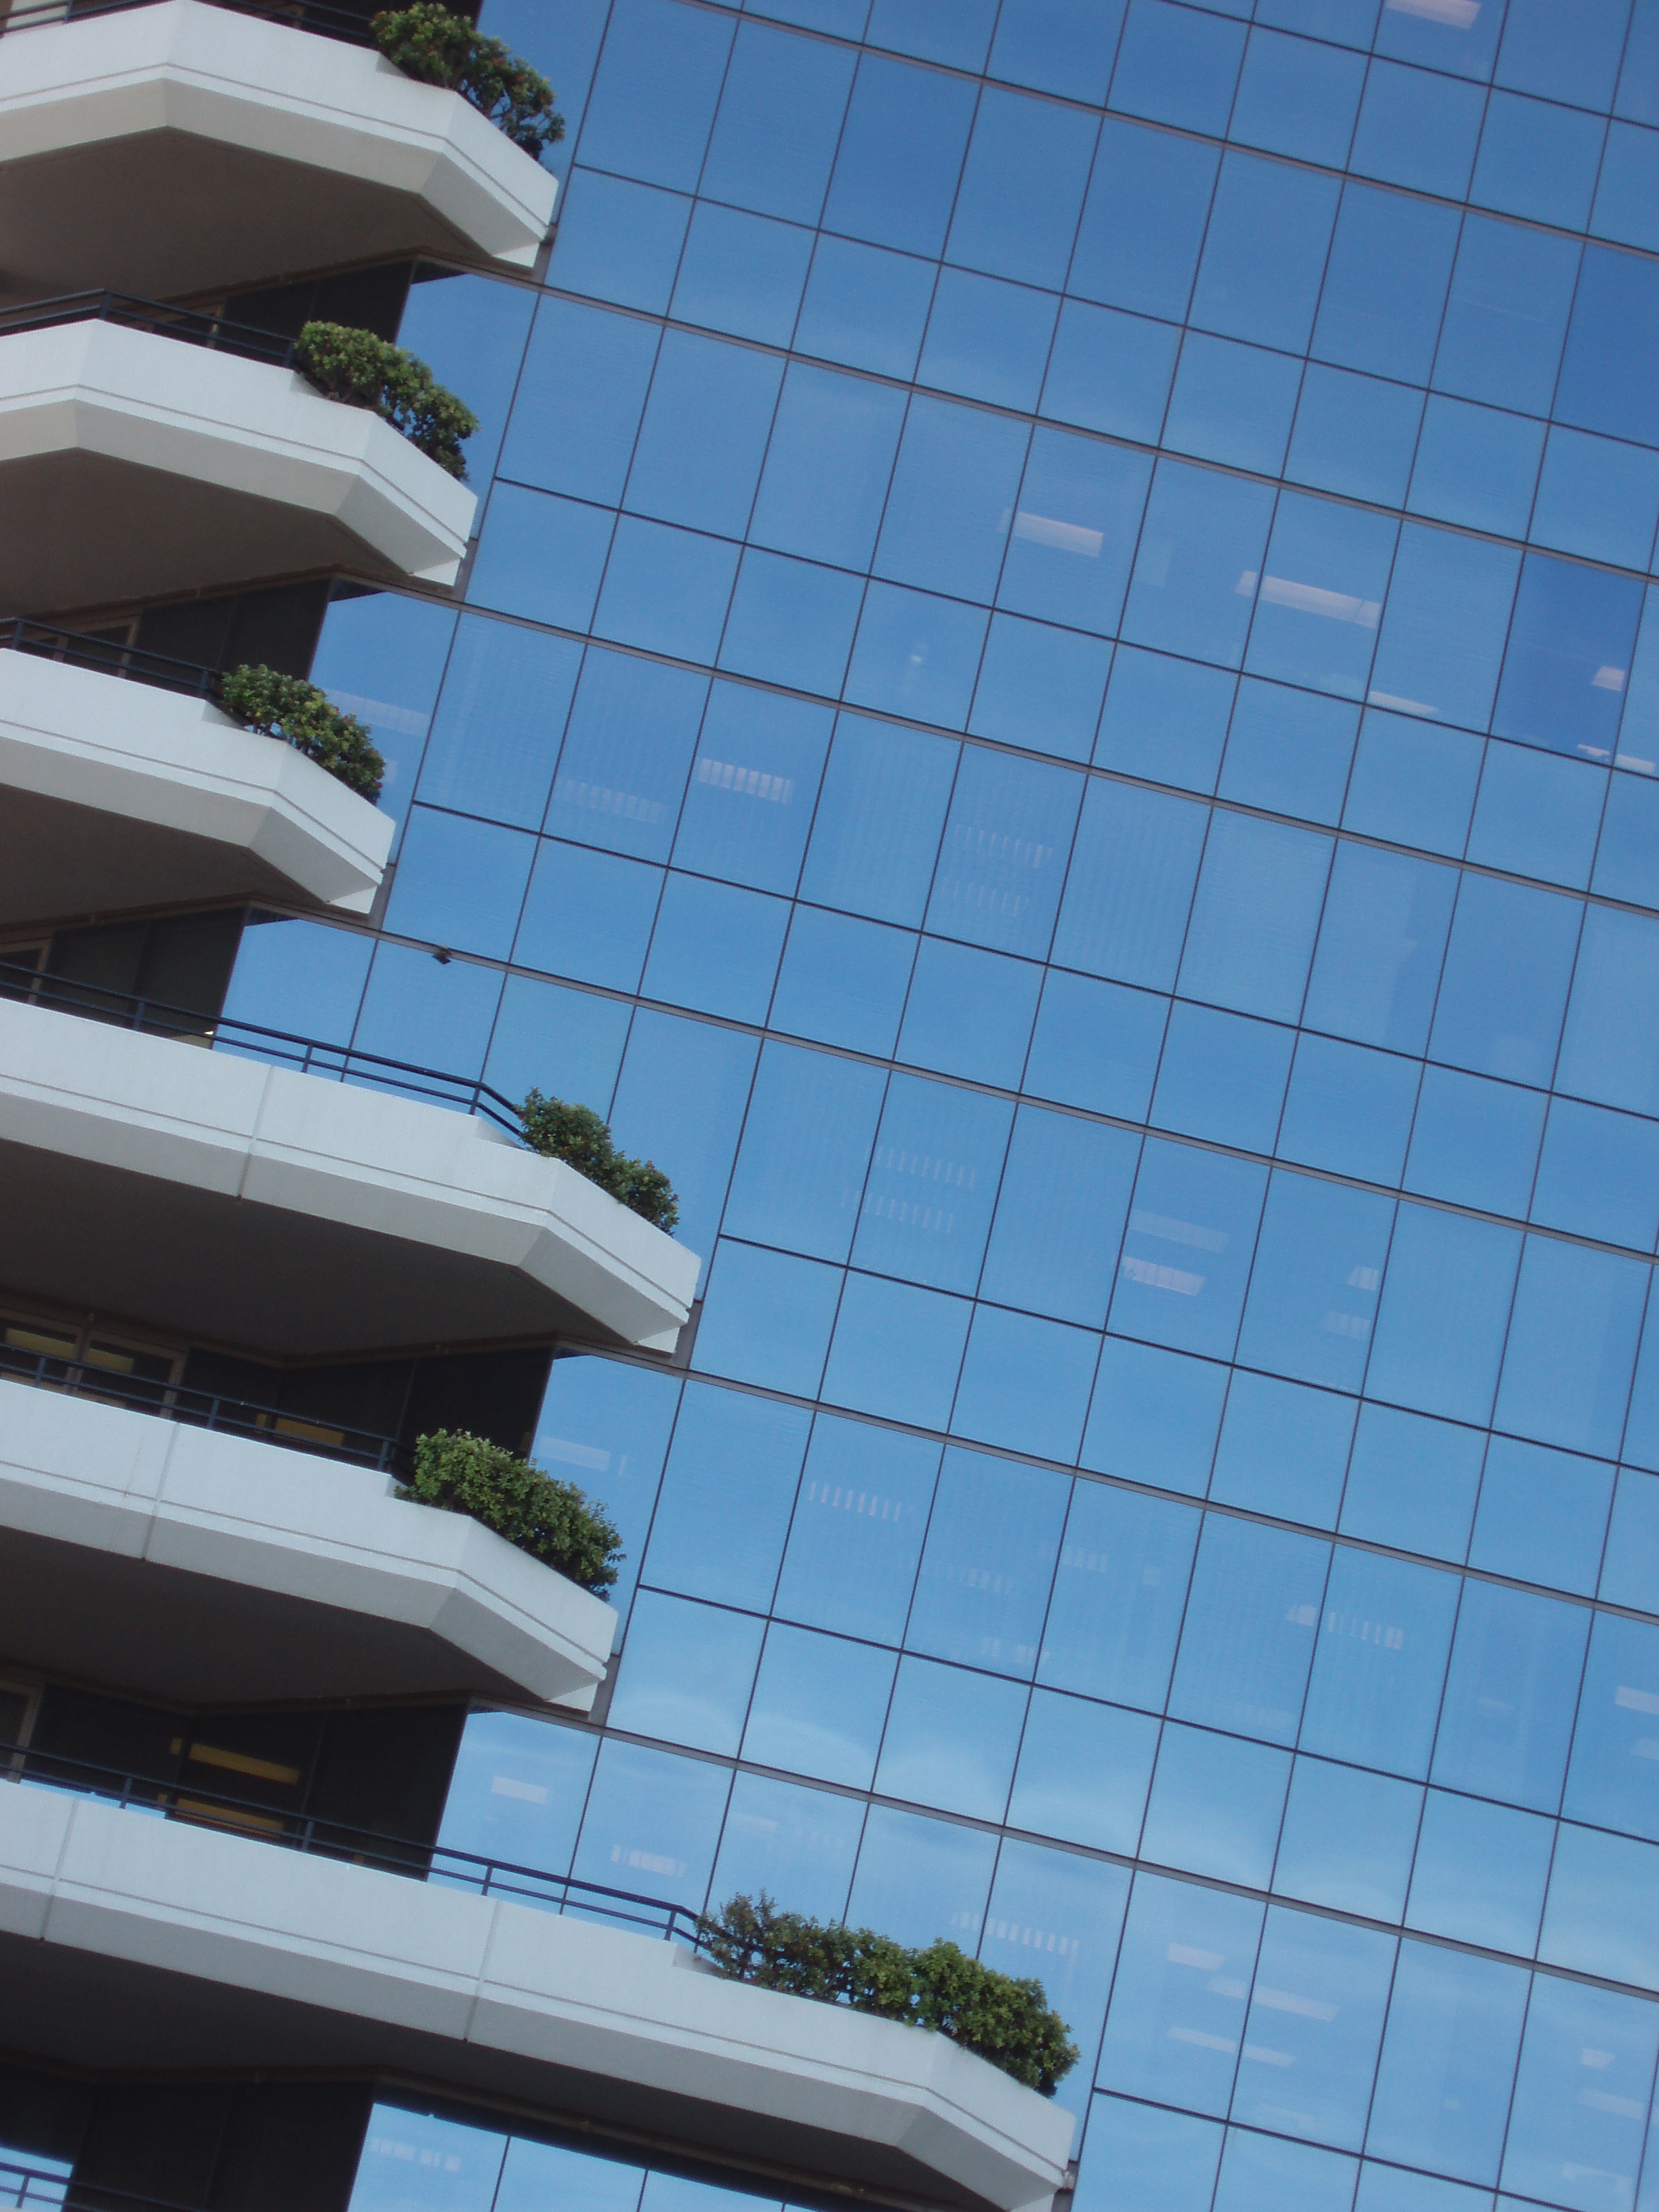 architecture images: modern building reflection